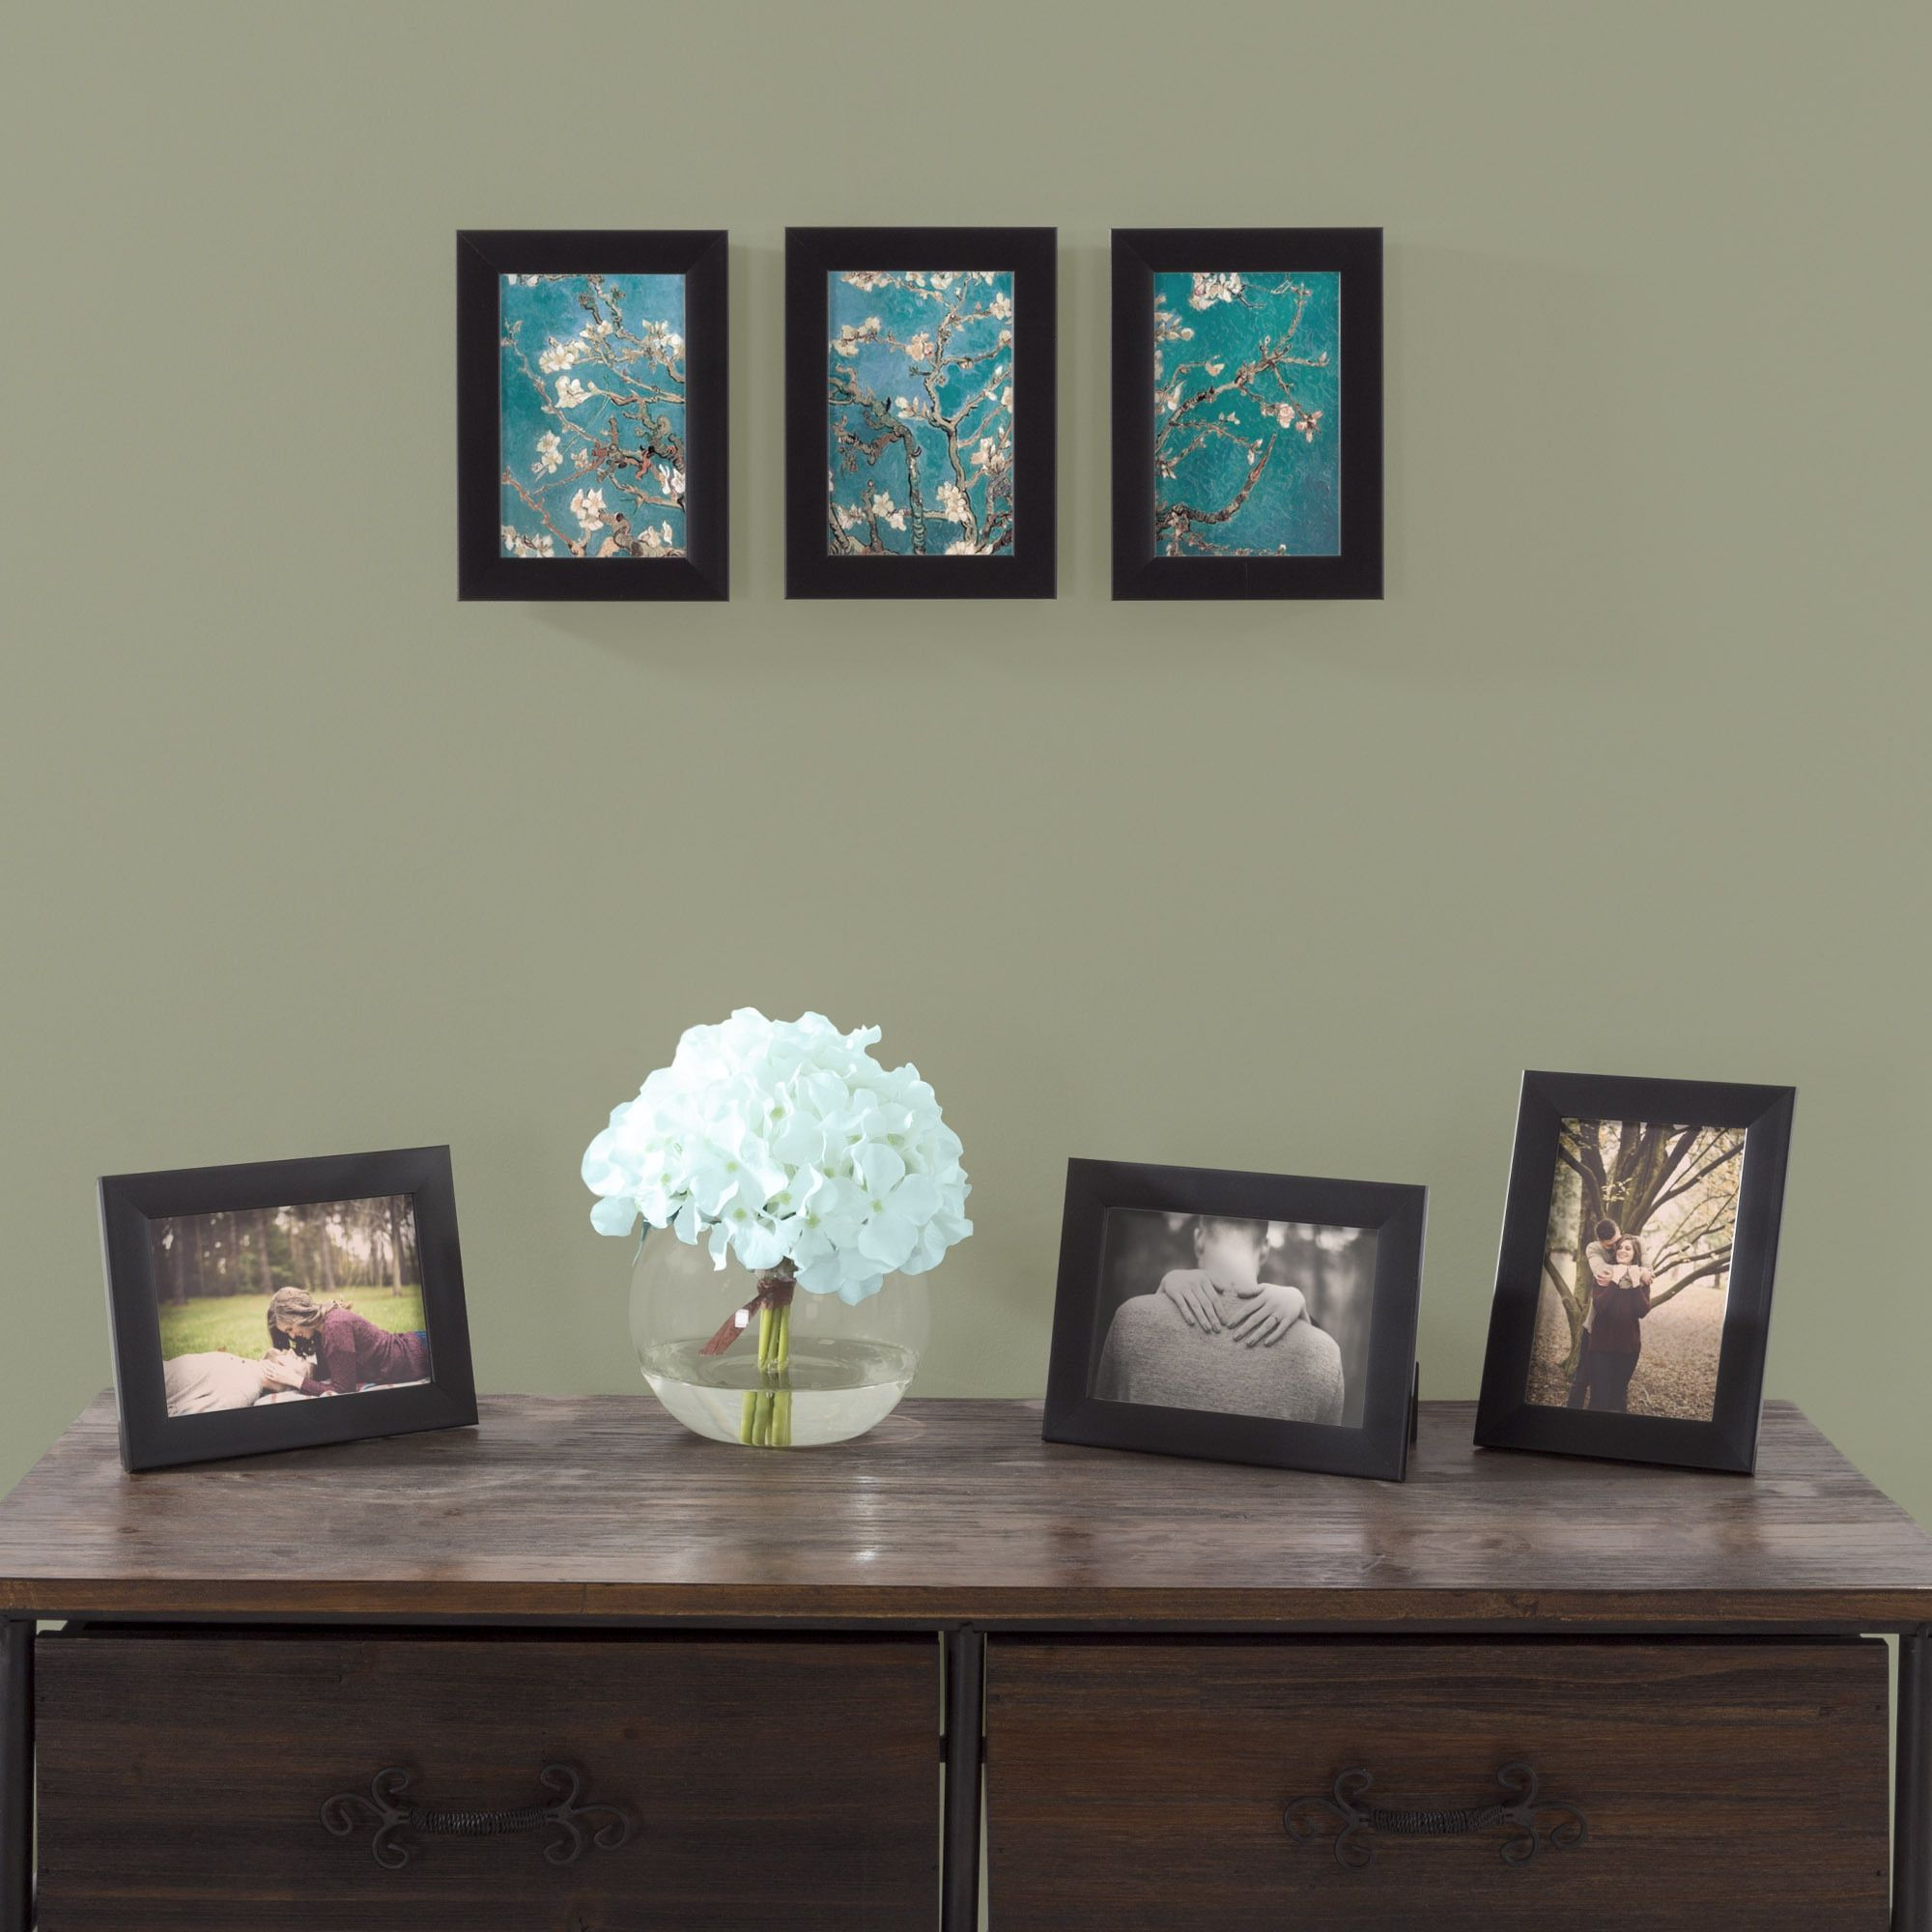 Trademark Picture Frame Set, Frames Pack For Picture Gallery Wall